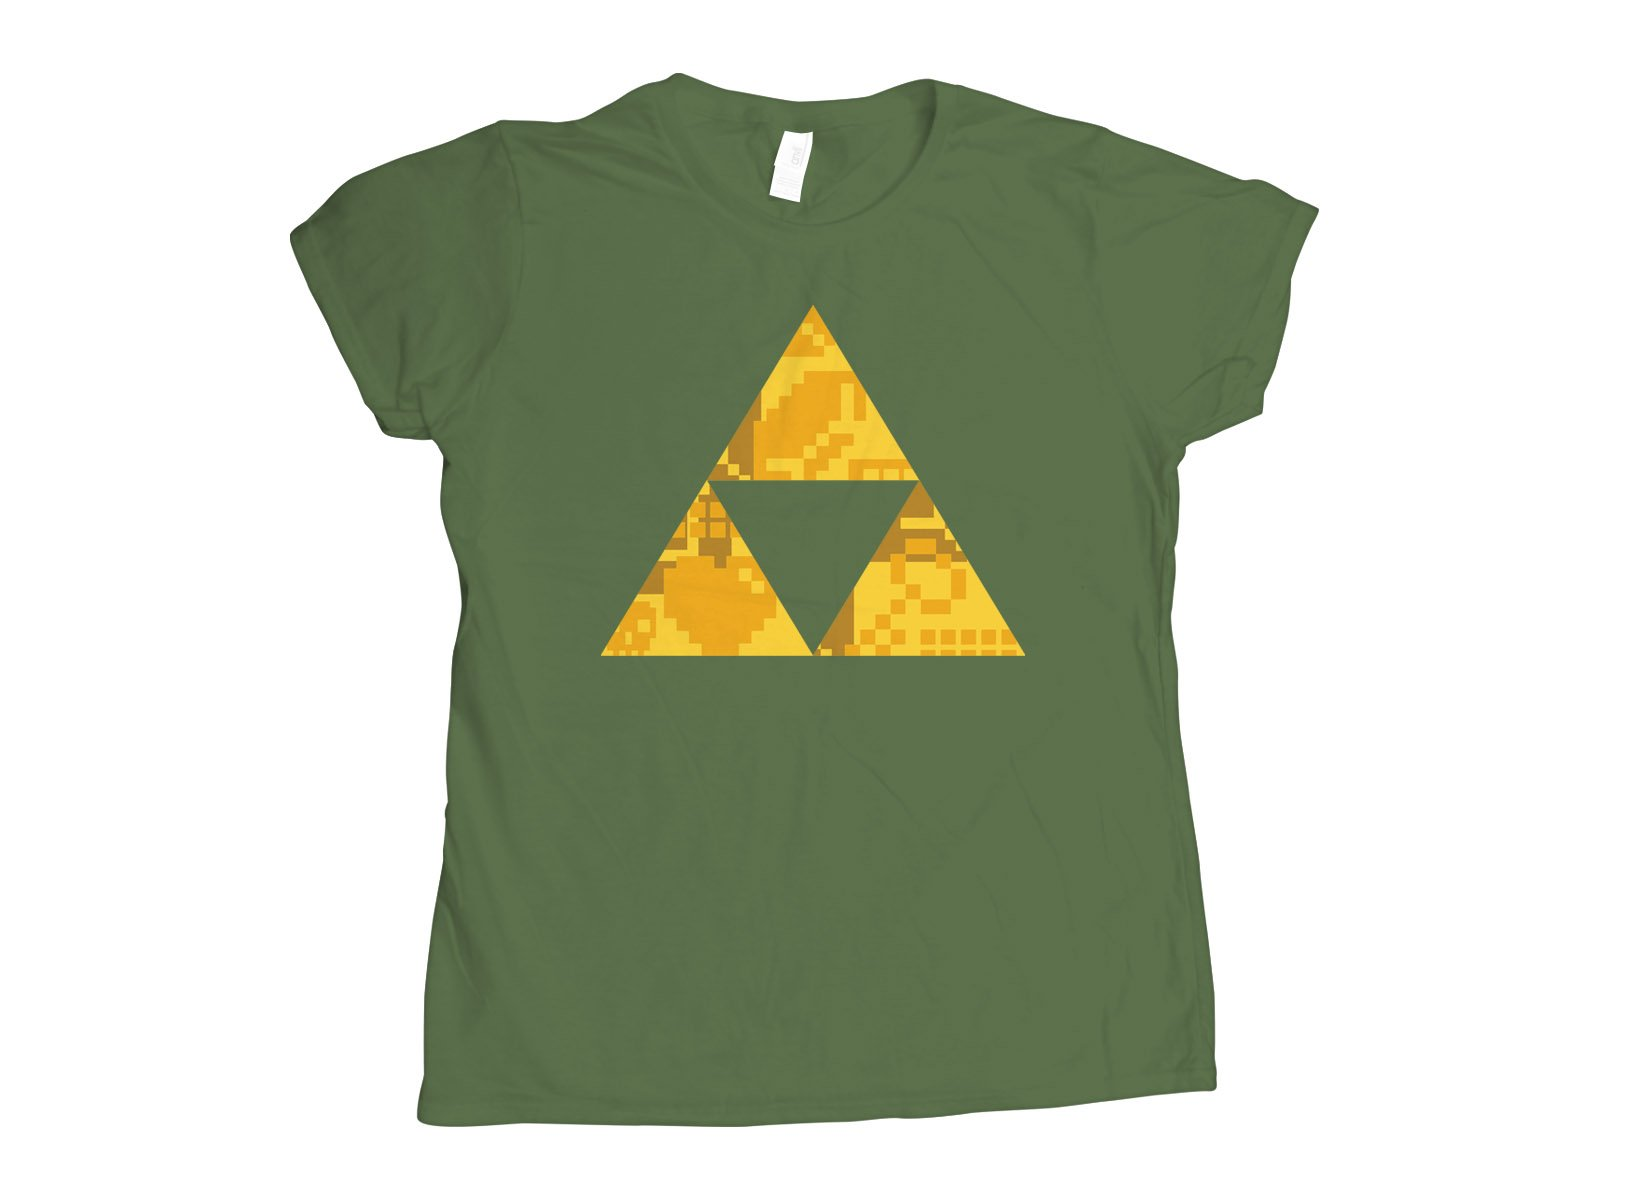 Triforce on Womens T-Shirt